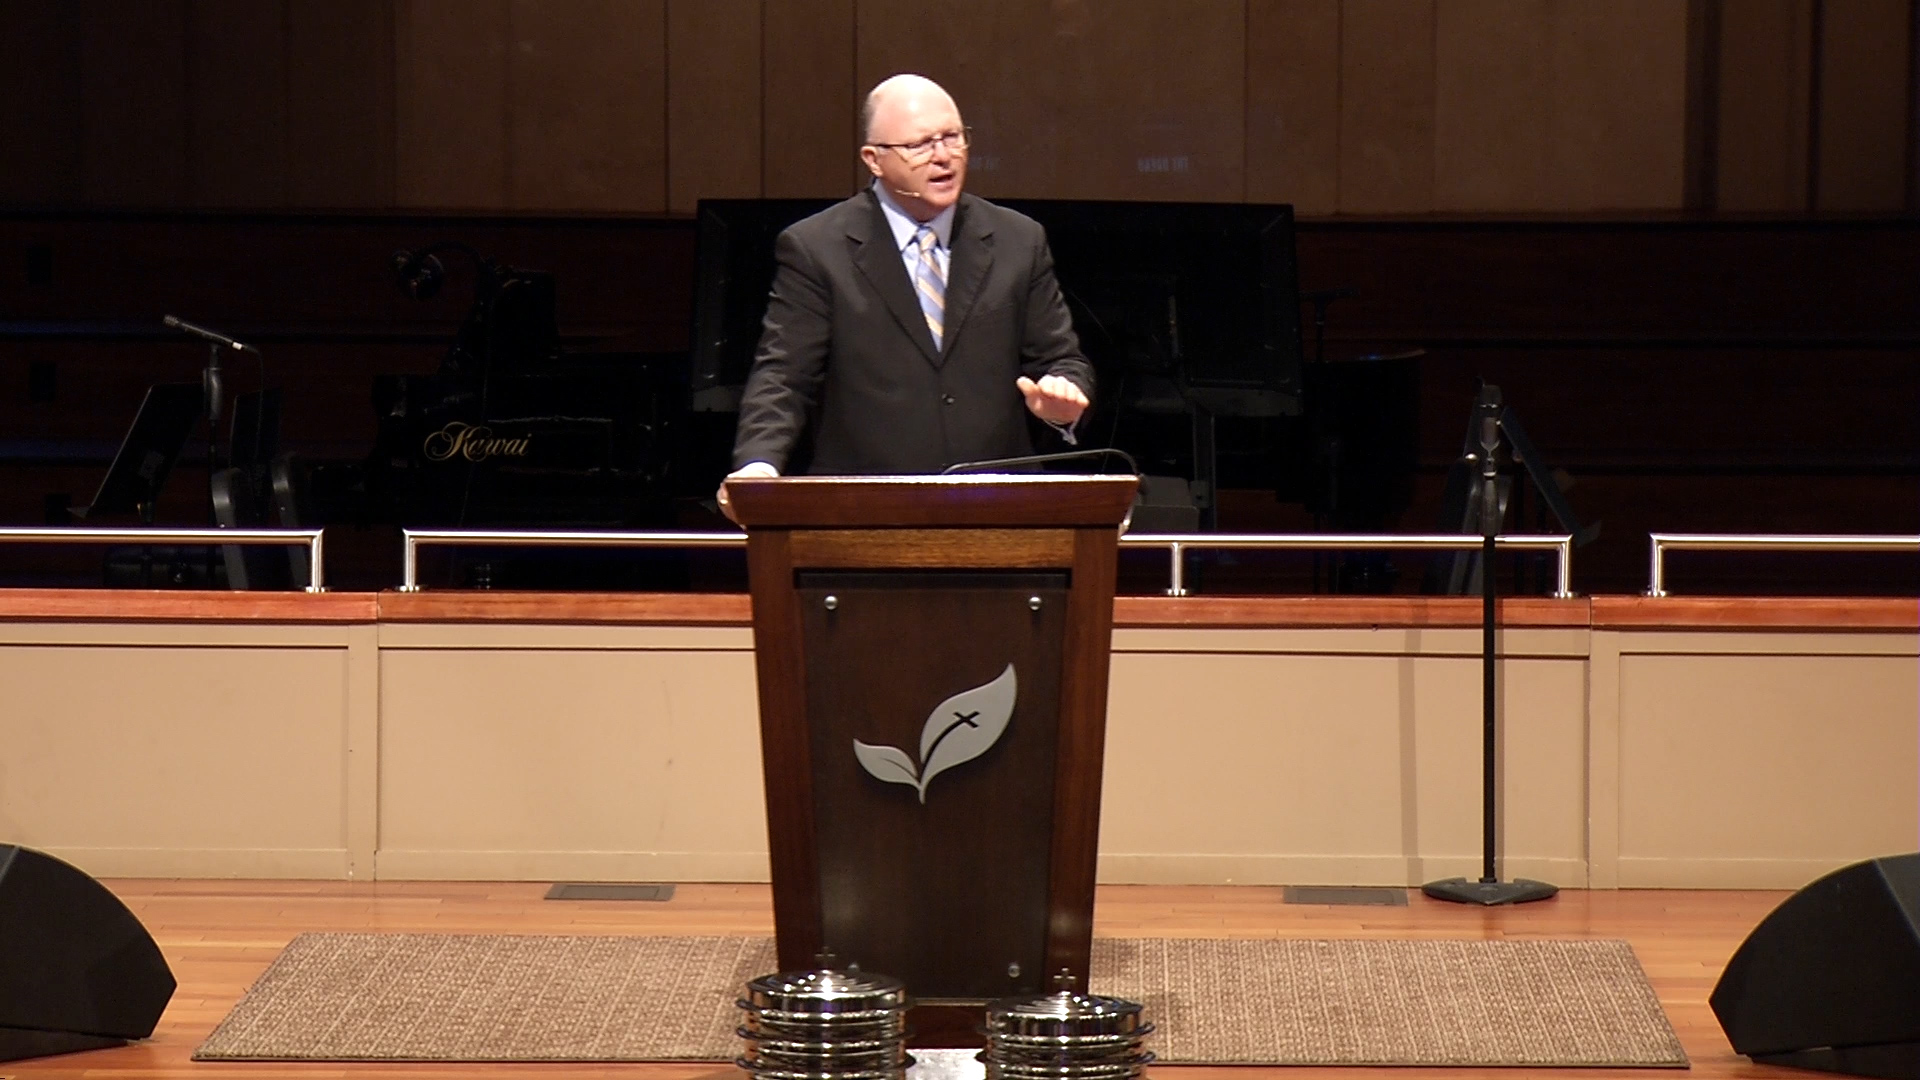 Pastor Paul Chappell: Revival and the Lord's Table